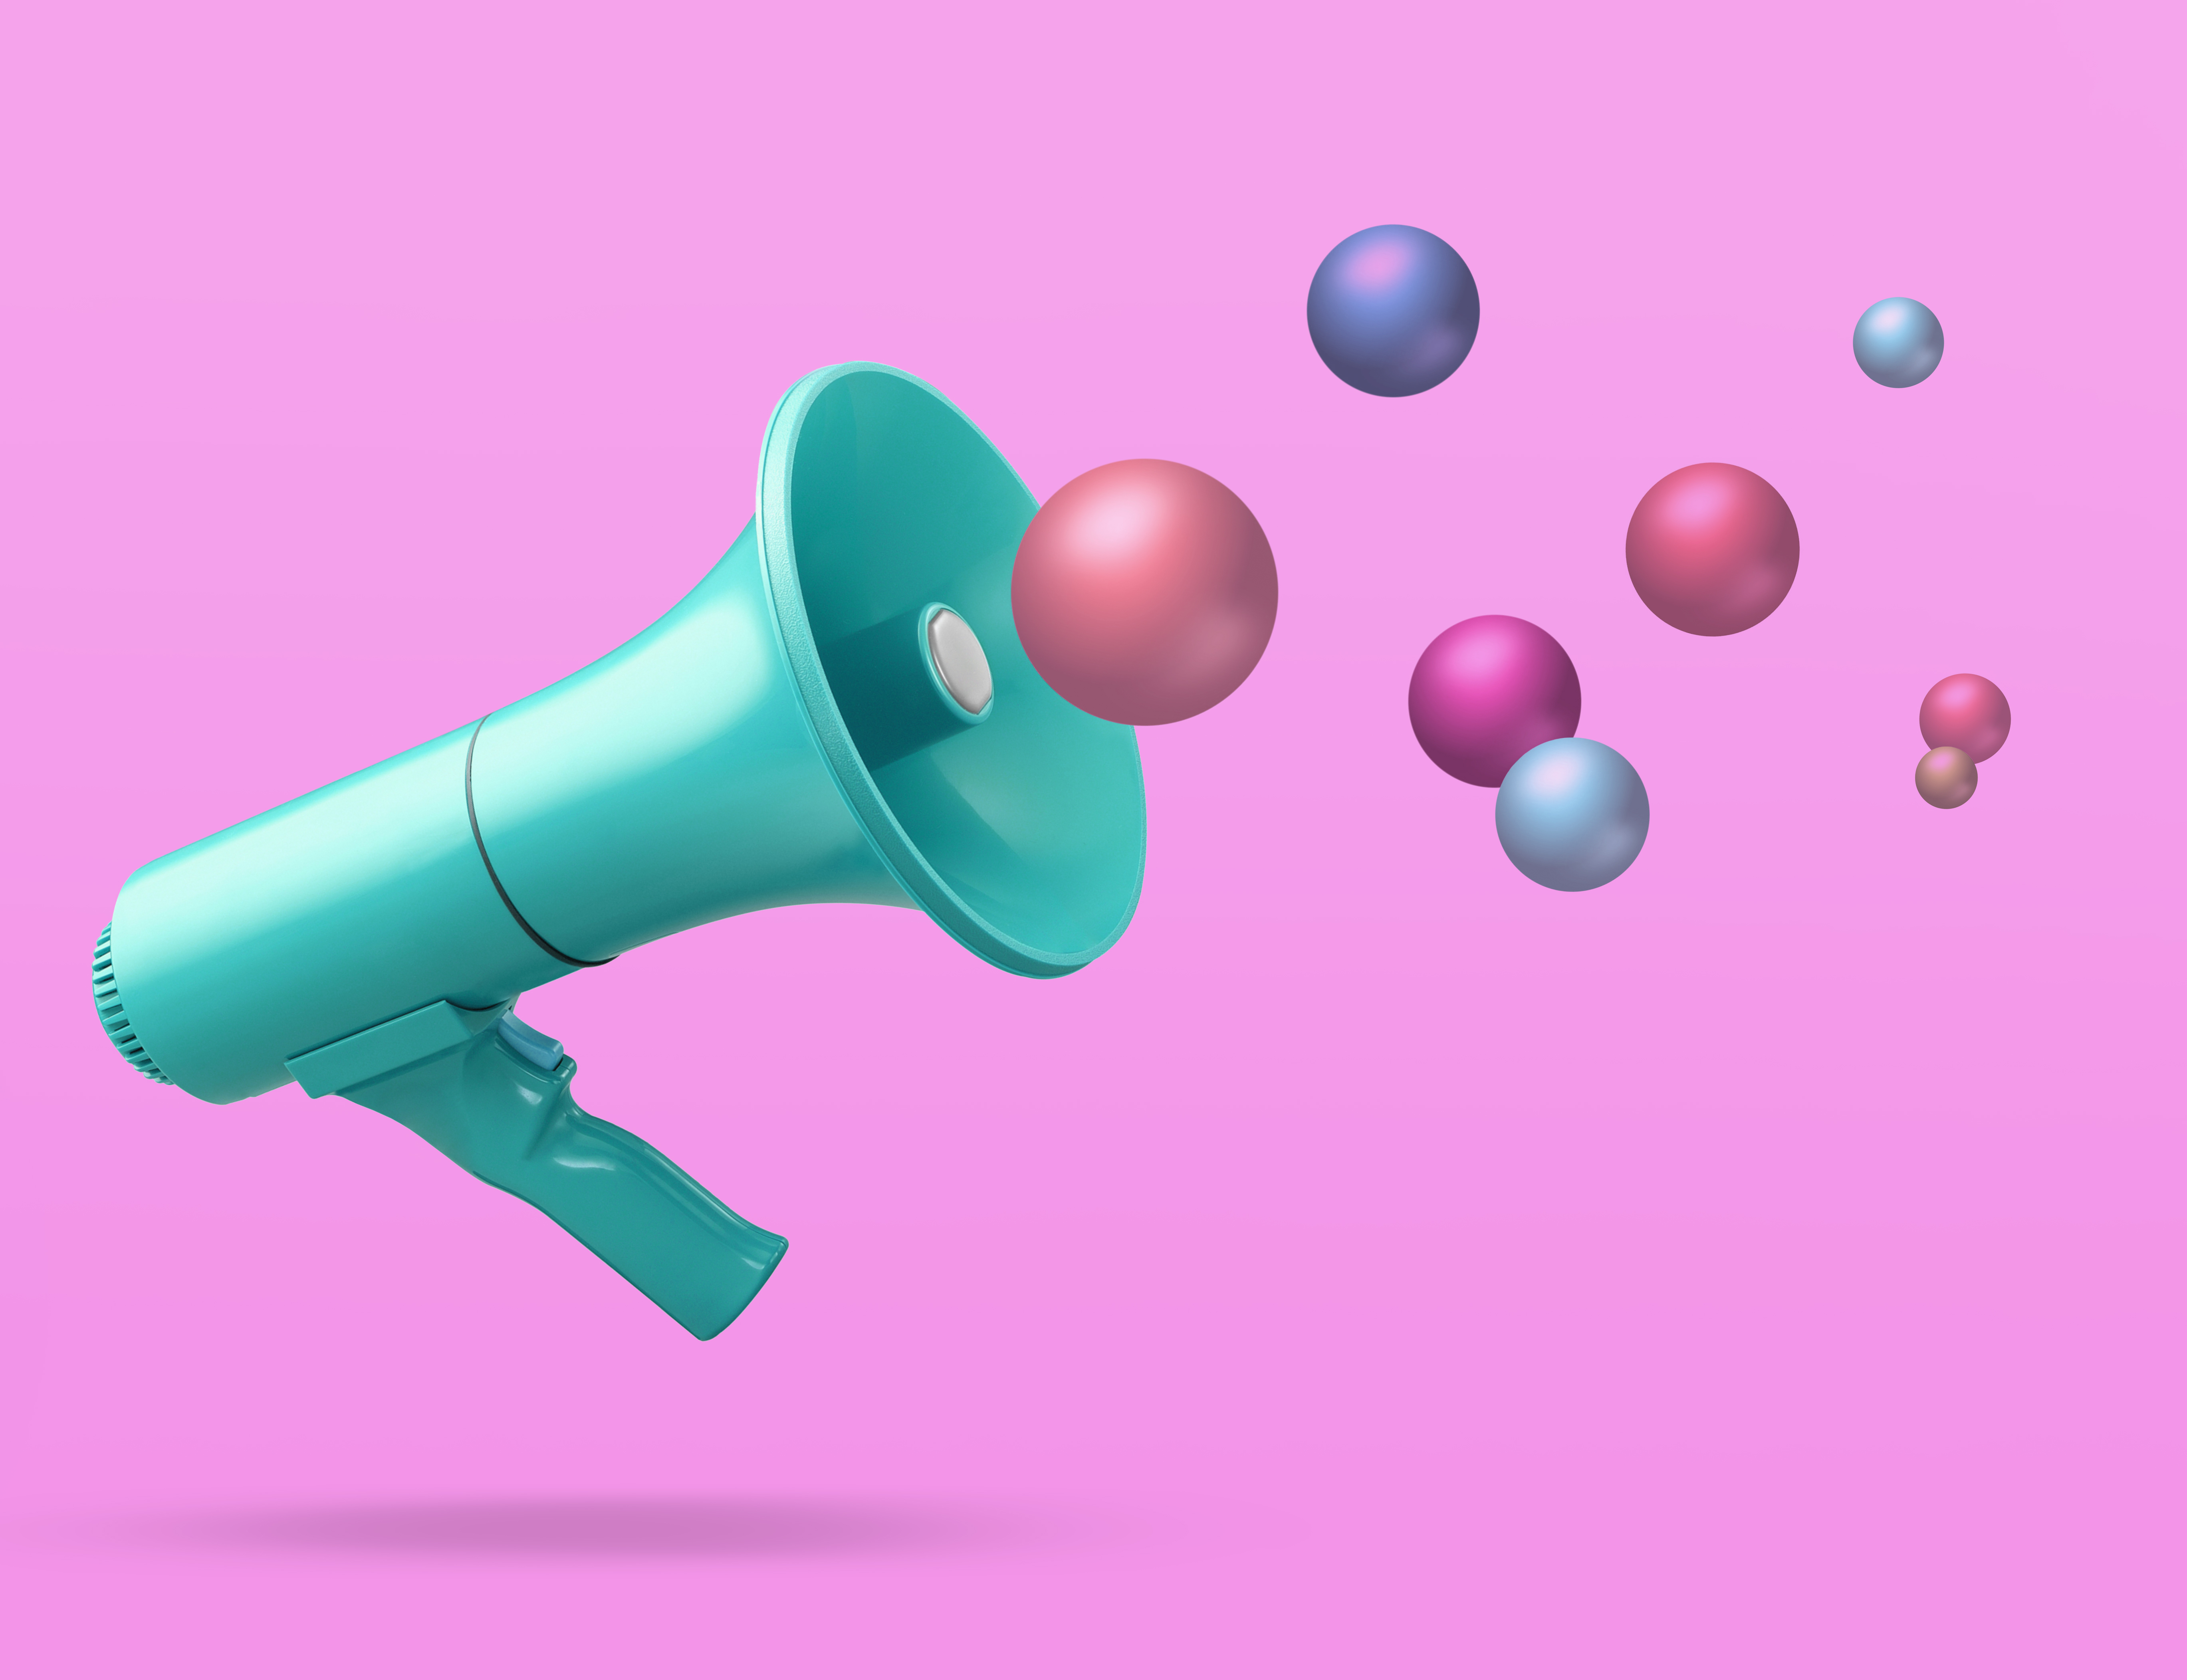 Image of a megaphone on a pink background with colorful balls in the air to represent marketing.